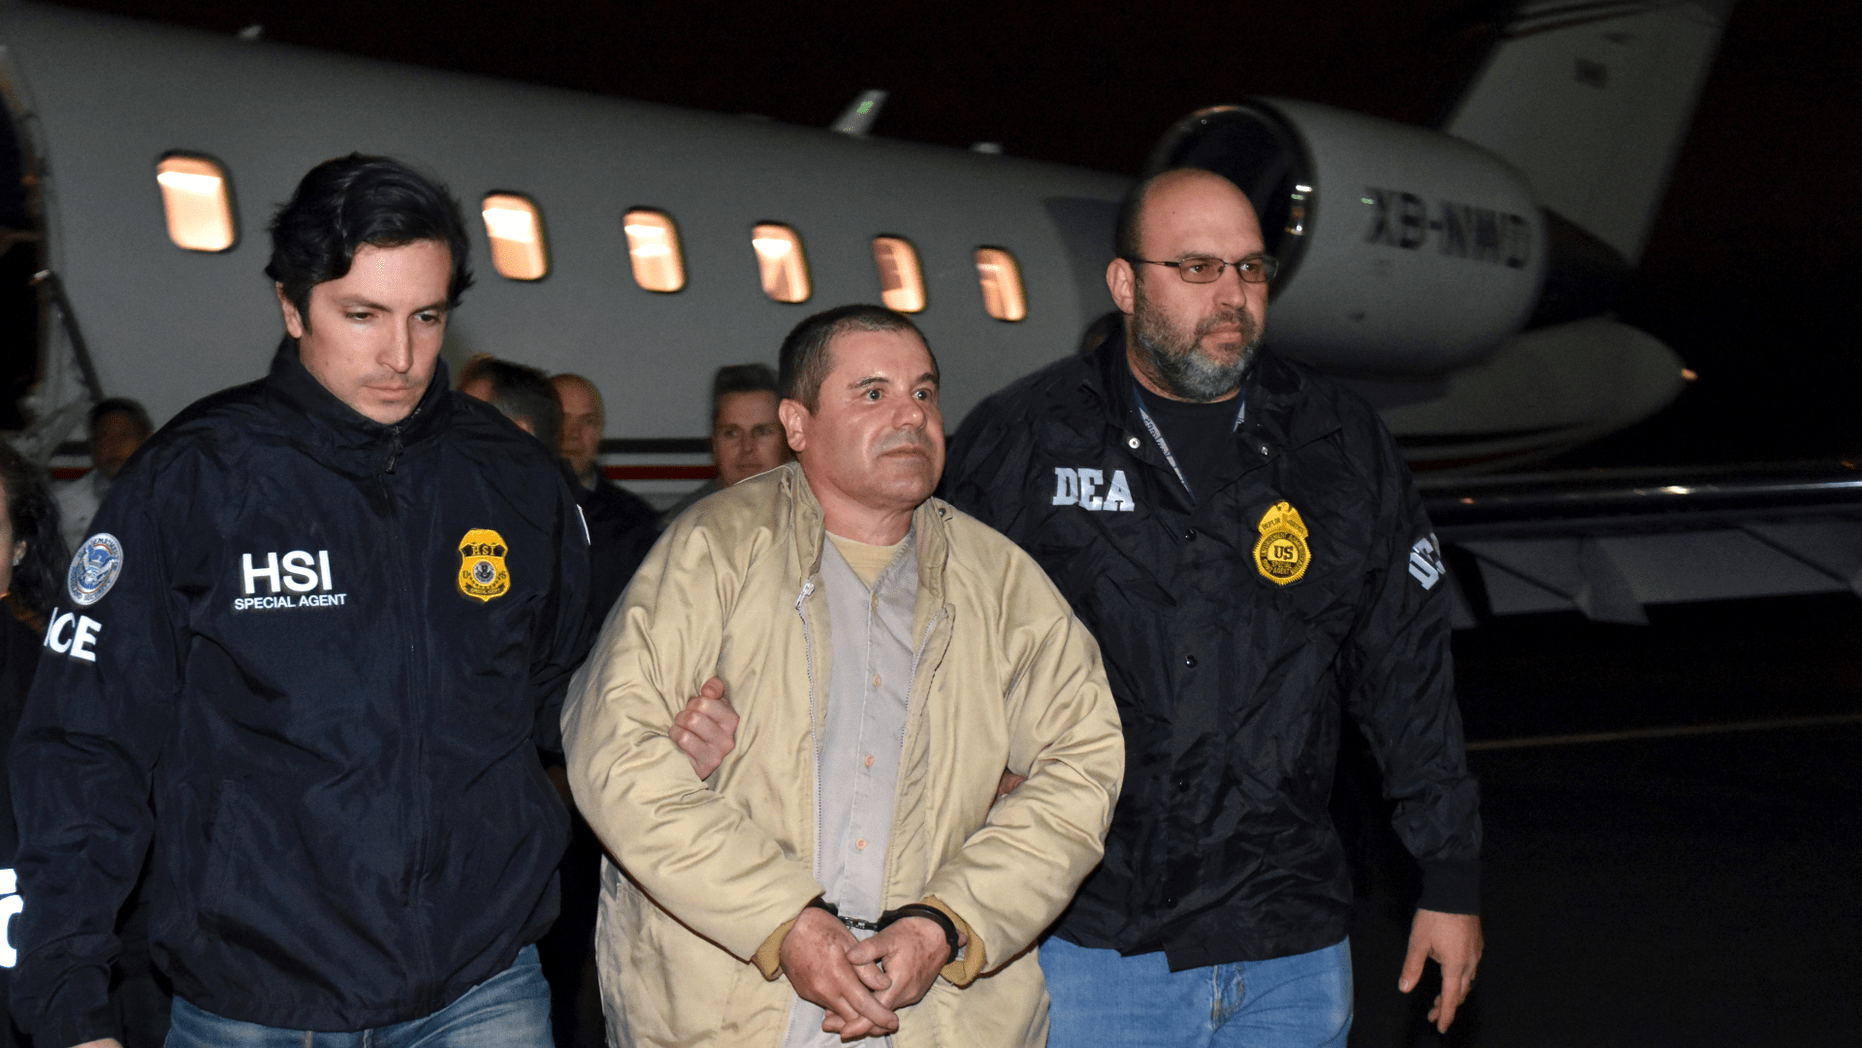 """In this Jan. 19, 2017, file photo provided U.S. law enforcement, authorities escort Joaquin """"El Chapo"""" Guzman, center, from a plane to a waiting caravan of SUVs at Long Island MacArthur Airport, in Ronkonkoma, New York."""